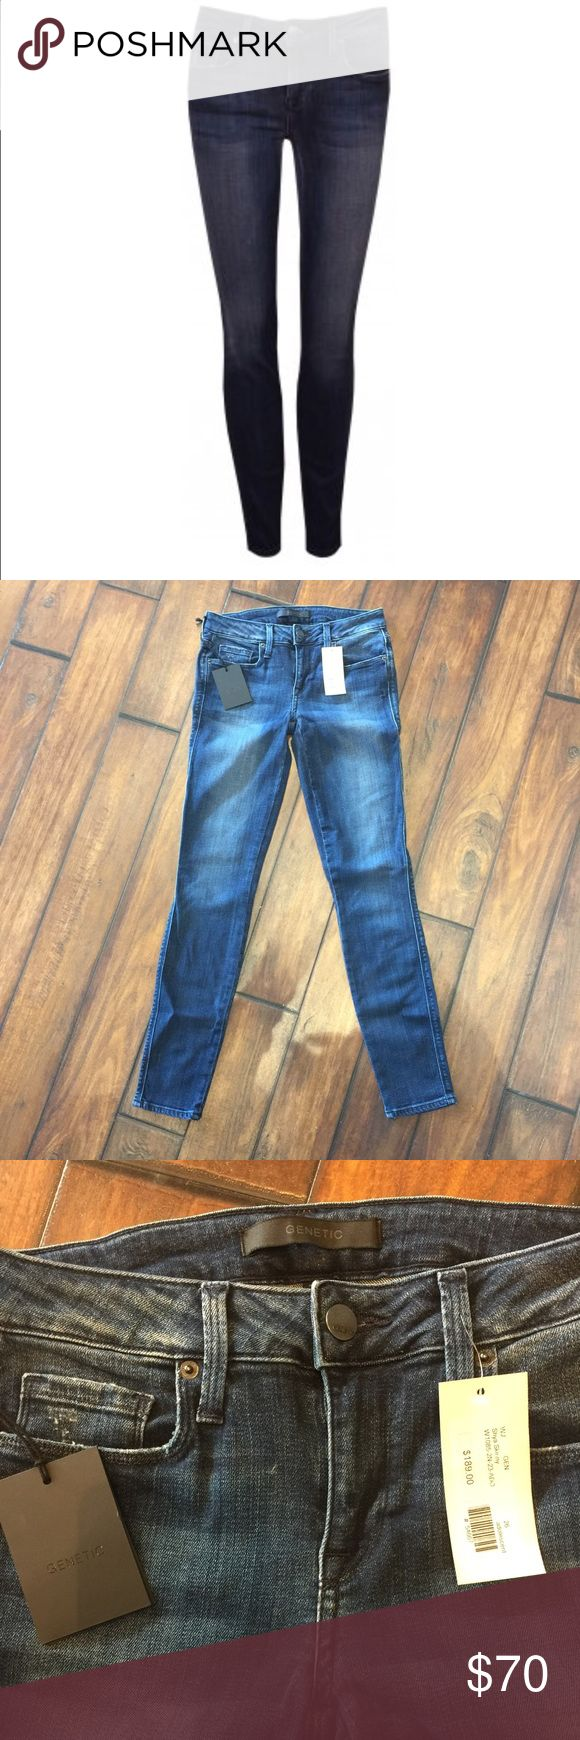 """Genetic Jeans Genetic The Shya Skinny in Adolescent Blue is a super soft stretchy skinny! This classic 5-pocket versions looks like a structured jean but has the comfort and feel of a legging!  Rise: 8"""" Inseam: 30"""" Leg opening: 10"""" Fabric: 65% cotton, 33% lyocell, 2% elastic. Care instructions: machine wash cold. Ladies... these jeans are AMAZING!!! Genetic Denim Jeans Skinny"""